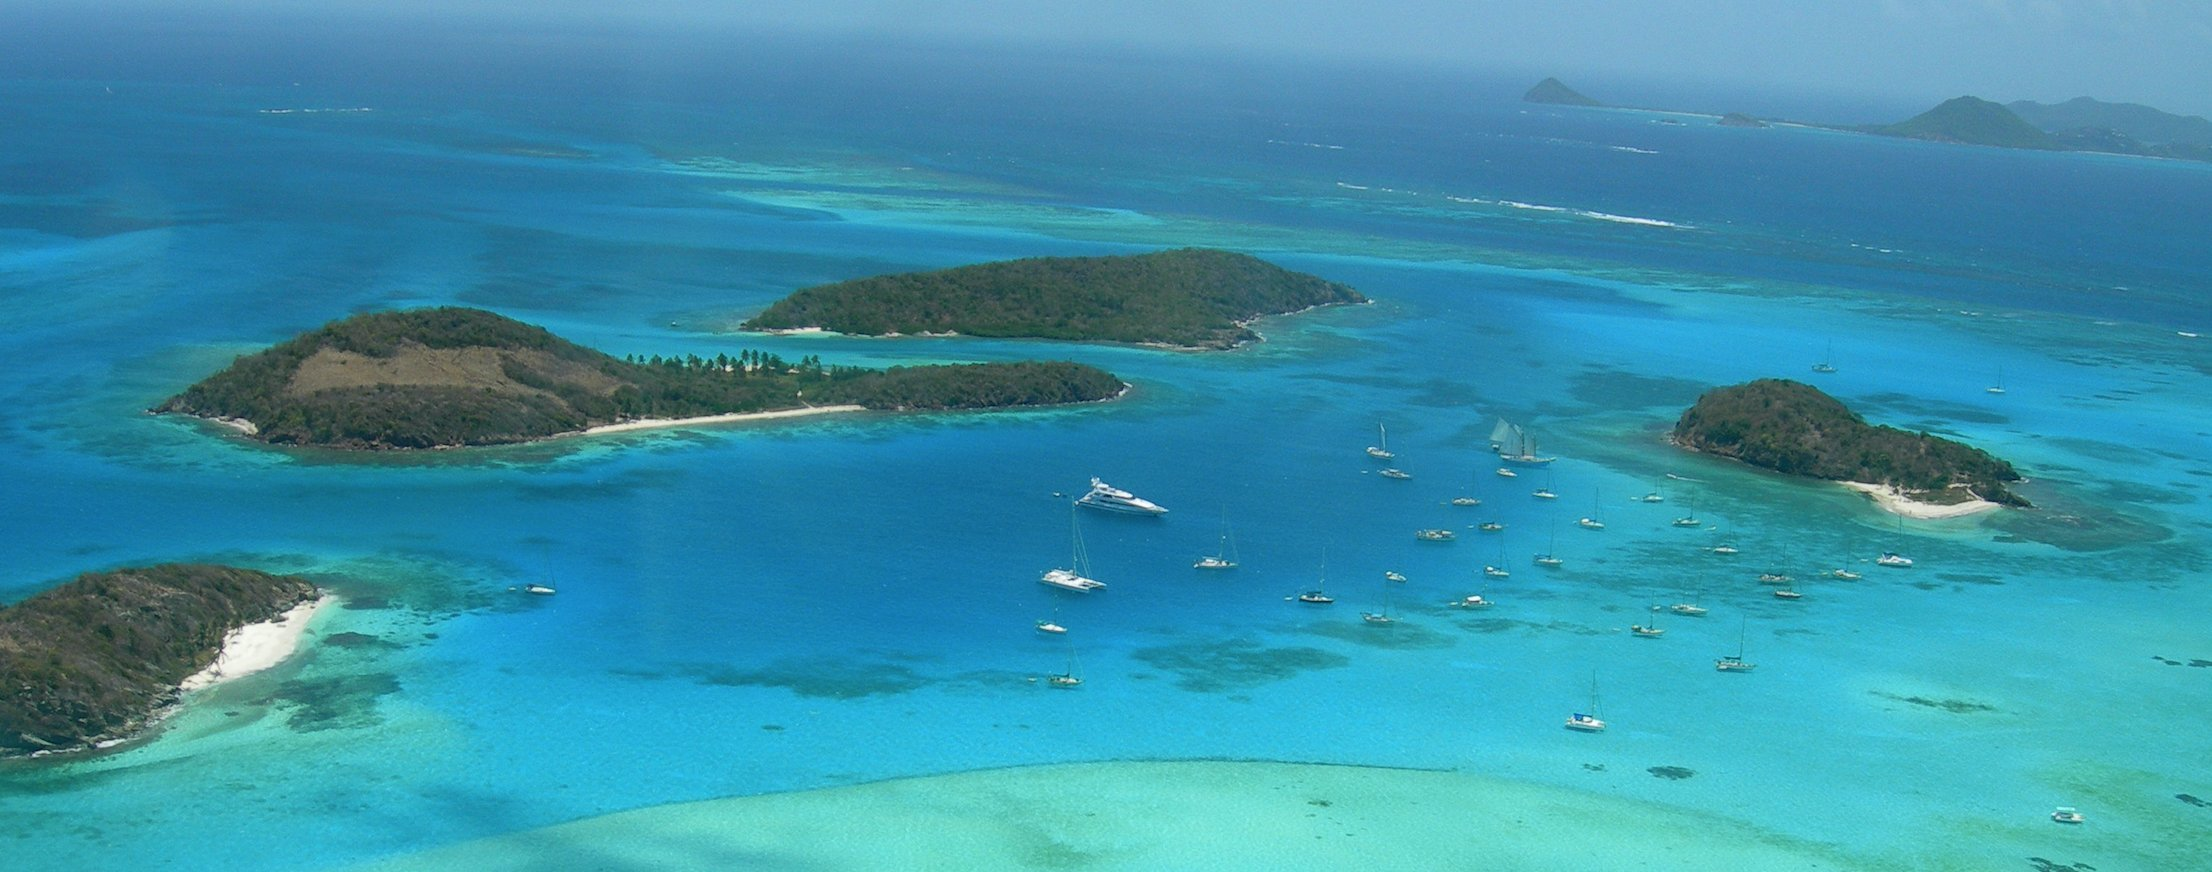 st-vincent-grenadines-yacht-charter-st-vincent-grenadines-yacht-rental-st-vincent-grenadines-boat-charter-st-vincent-grenadines-boat-rental-st-vincent-grenadines-sailing-7-days-itinerary-route